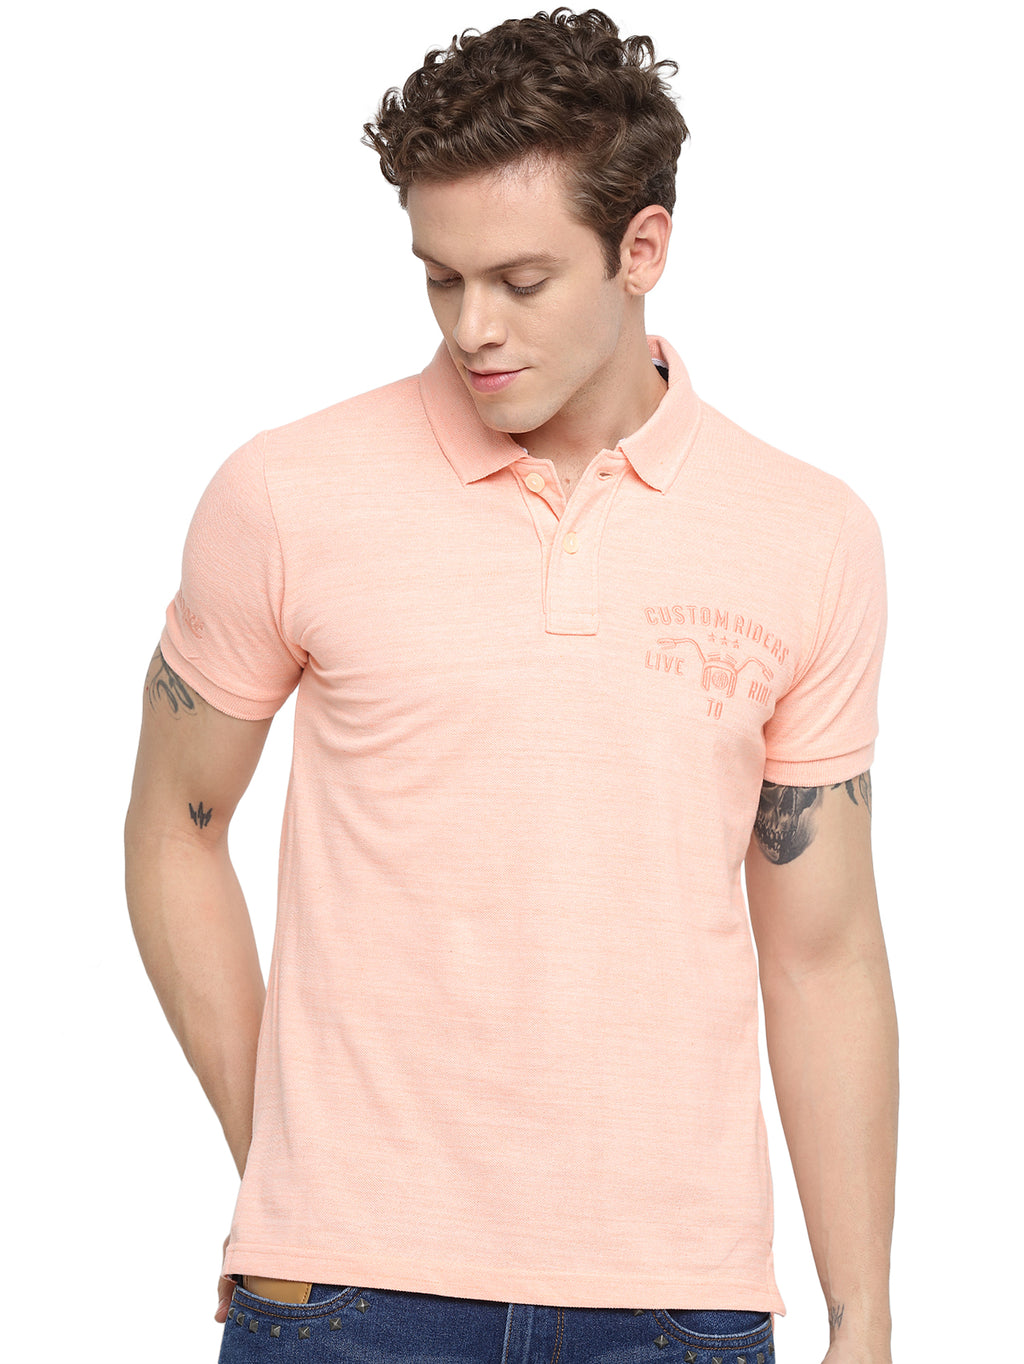 Rock Hooper Men's Solid Half sleeve Cotton Orange Melange Polo T-shirt